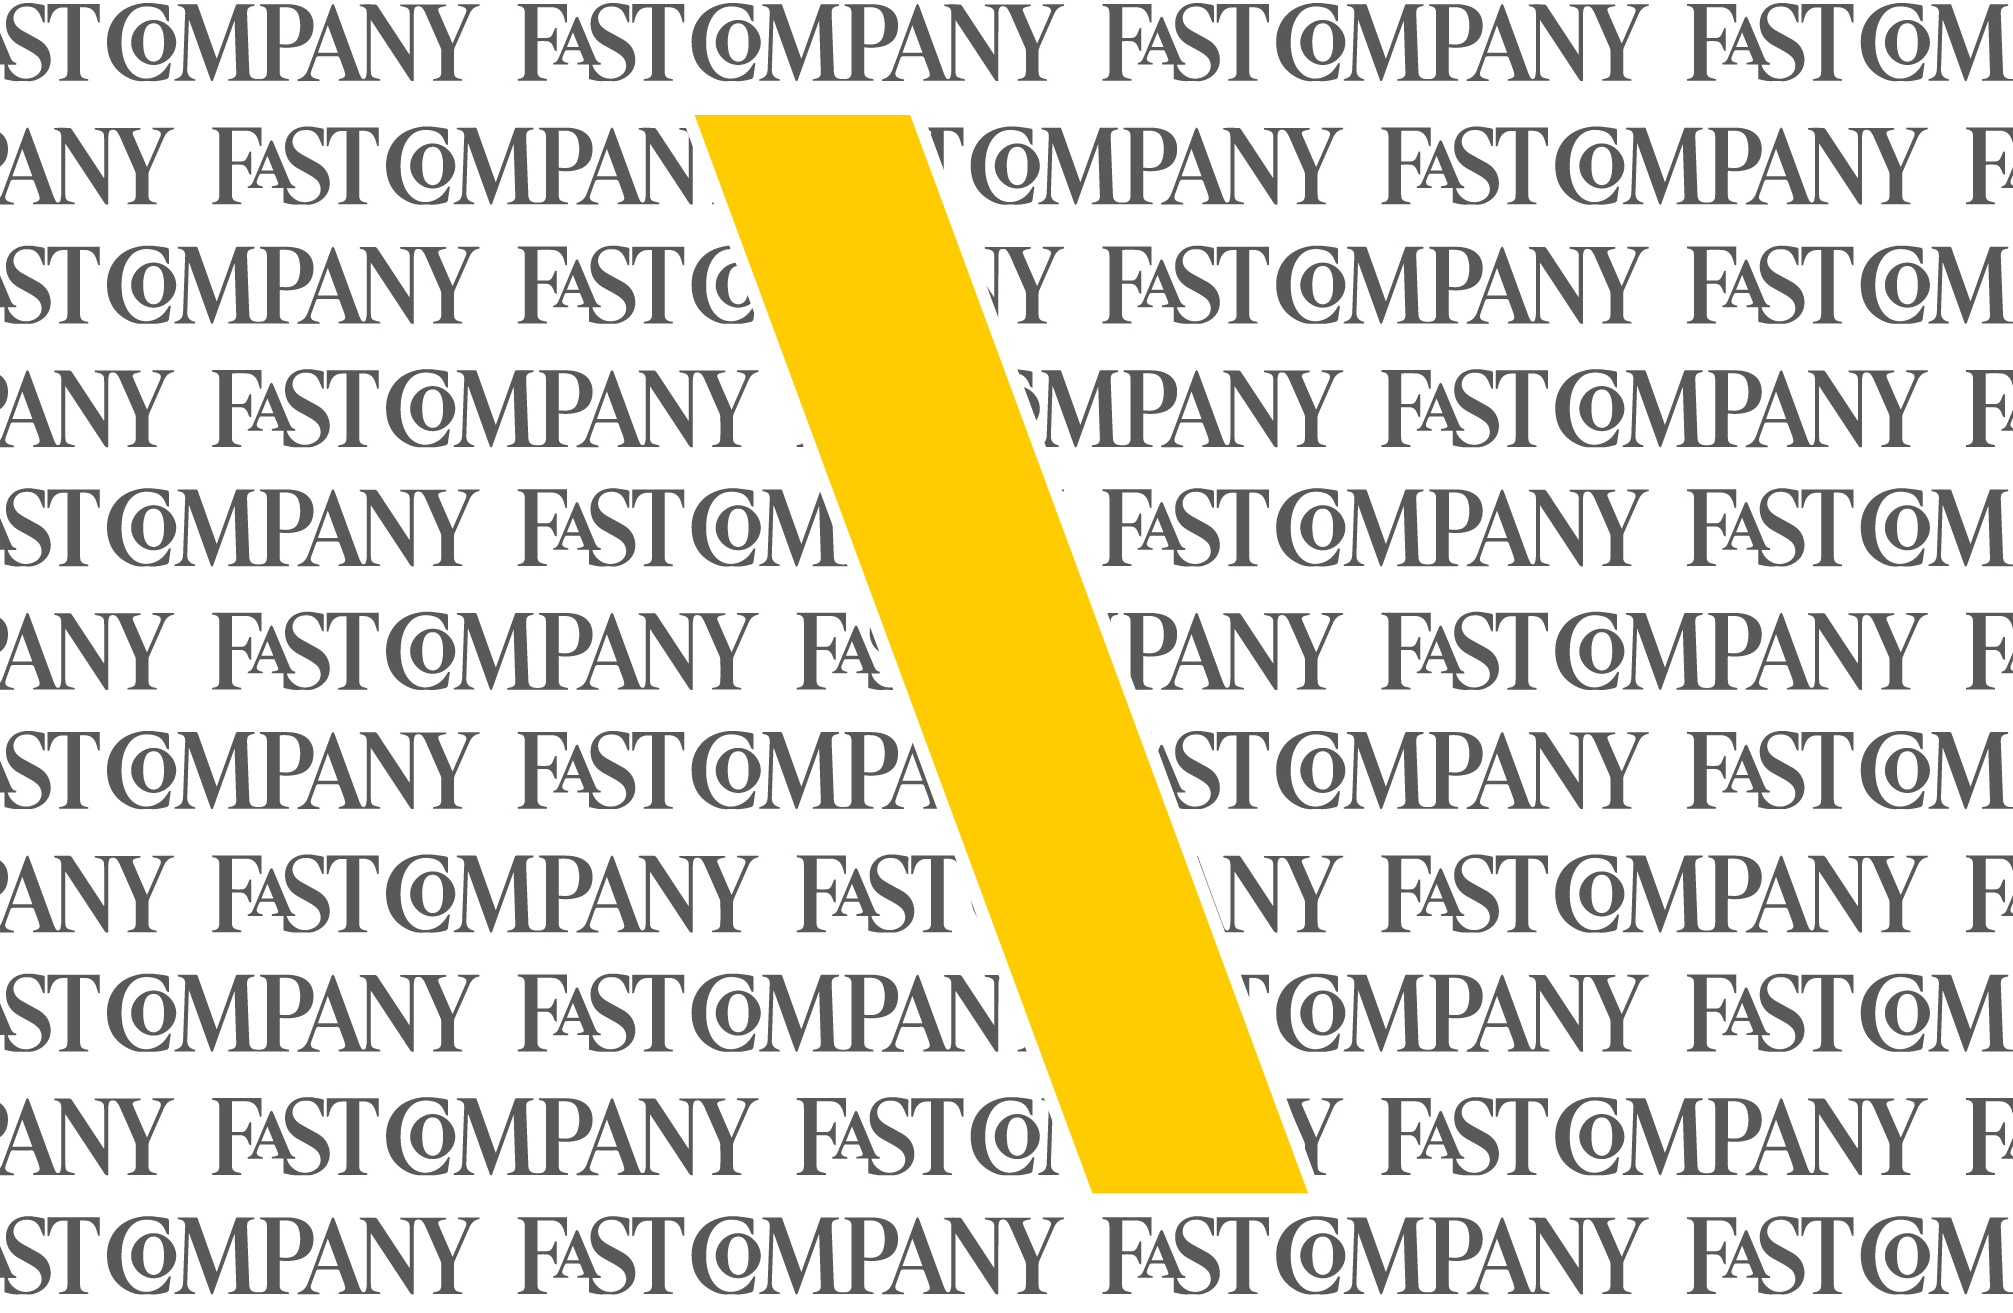 Fast Company Names TBWA One of The World's Most Innovative Companies for 2019